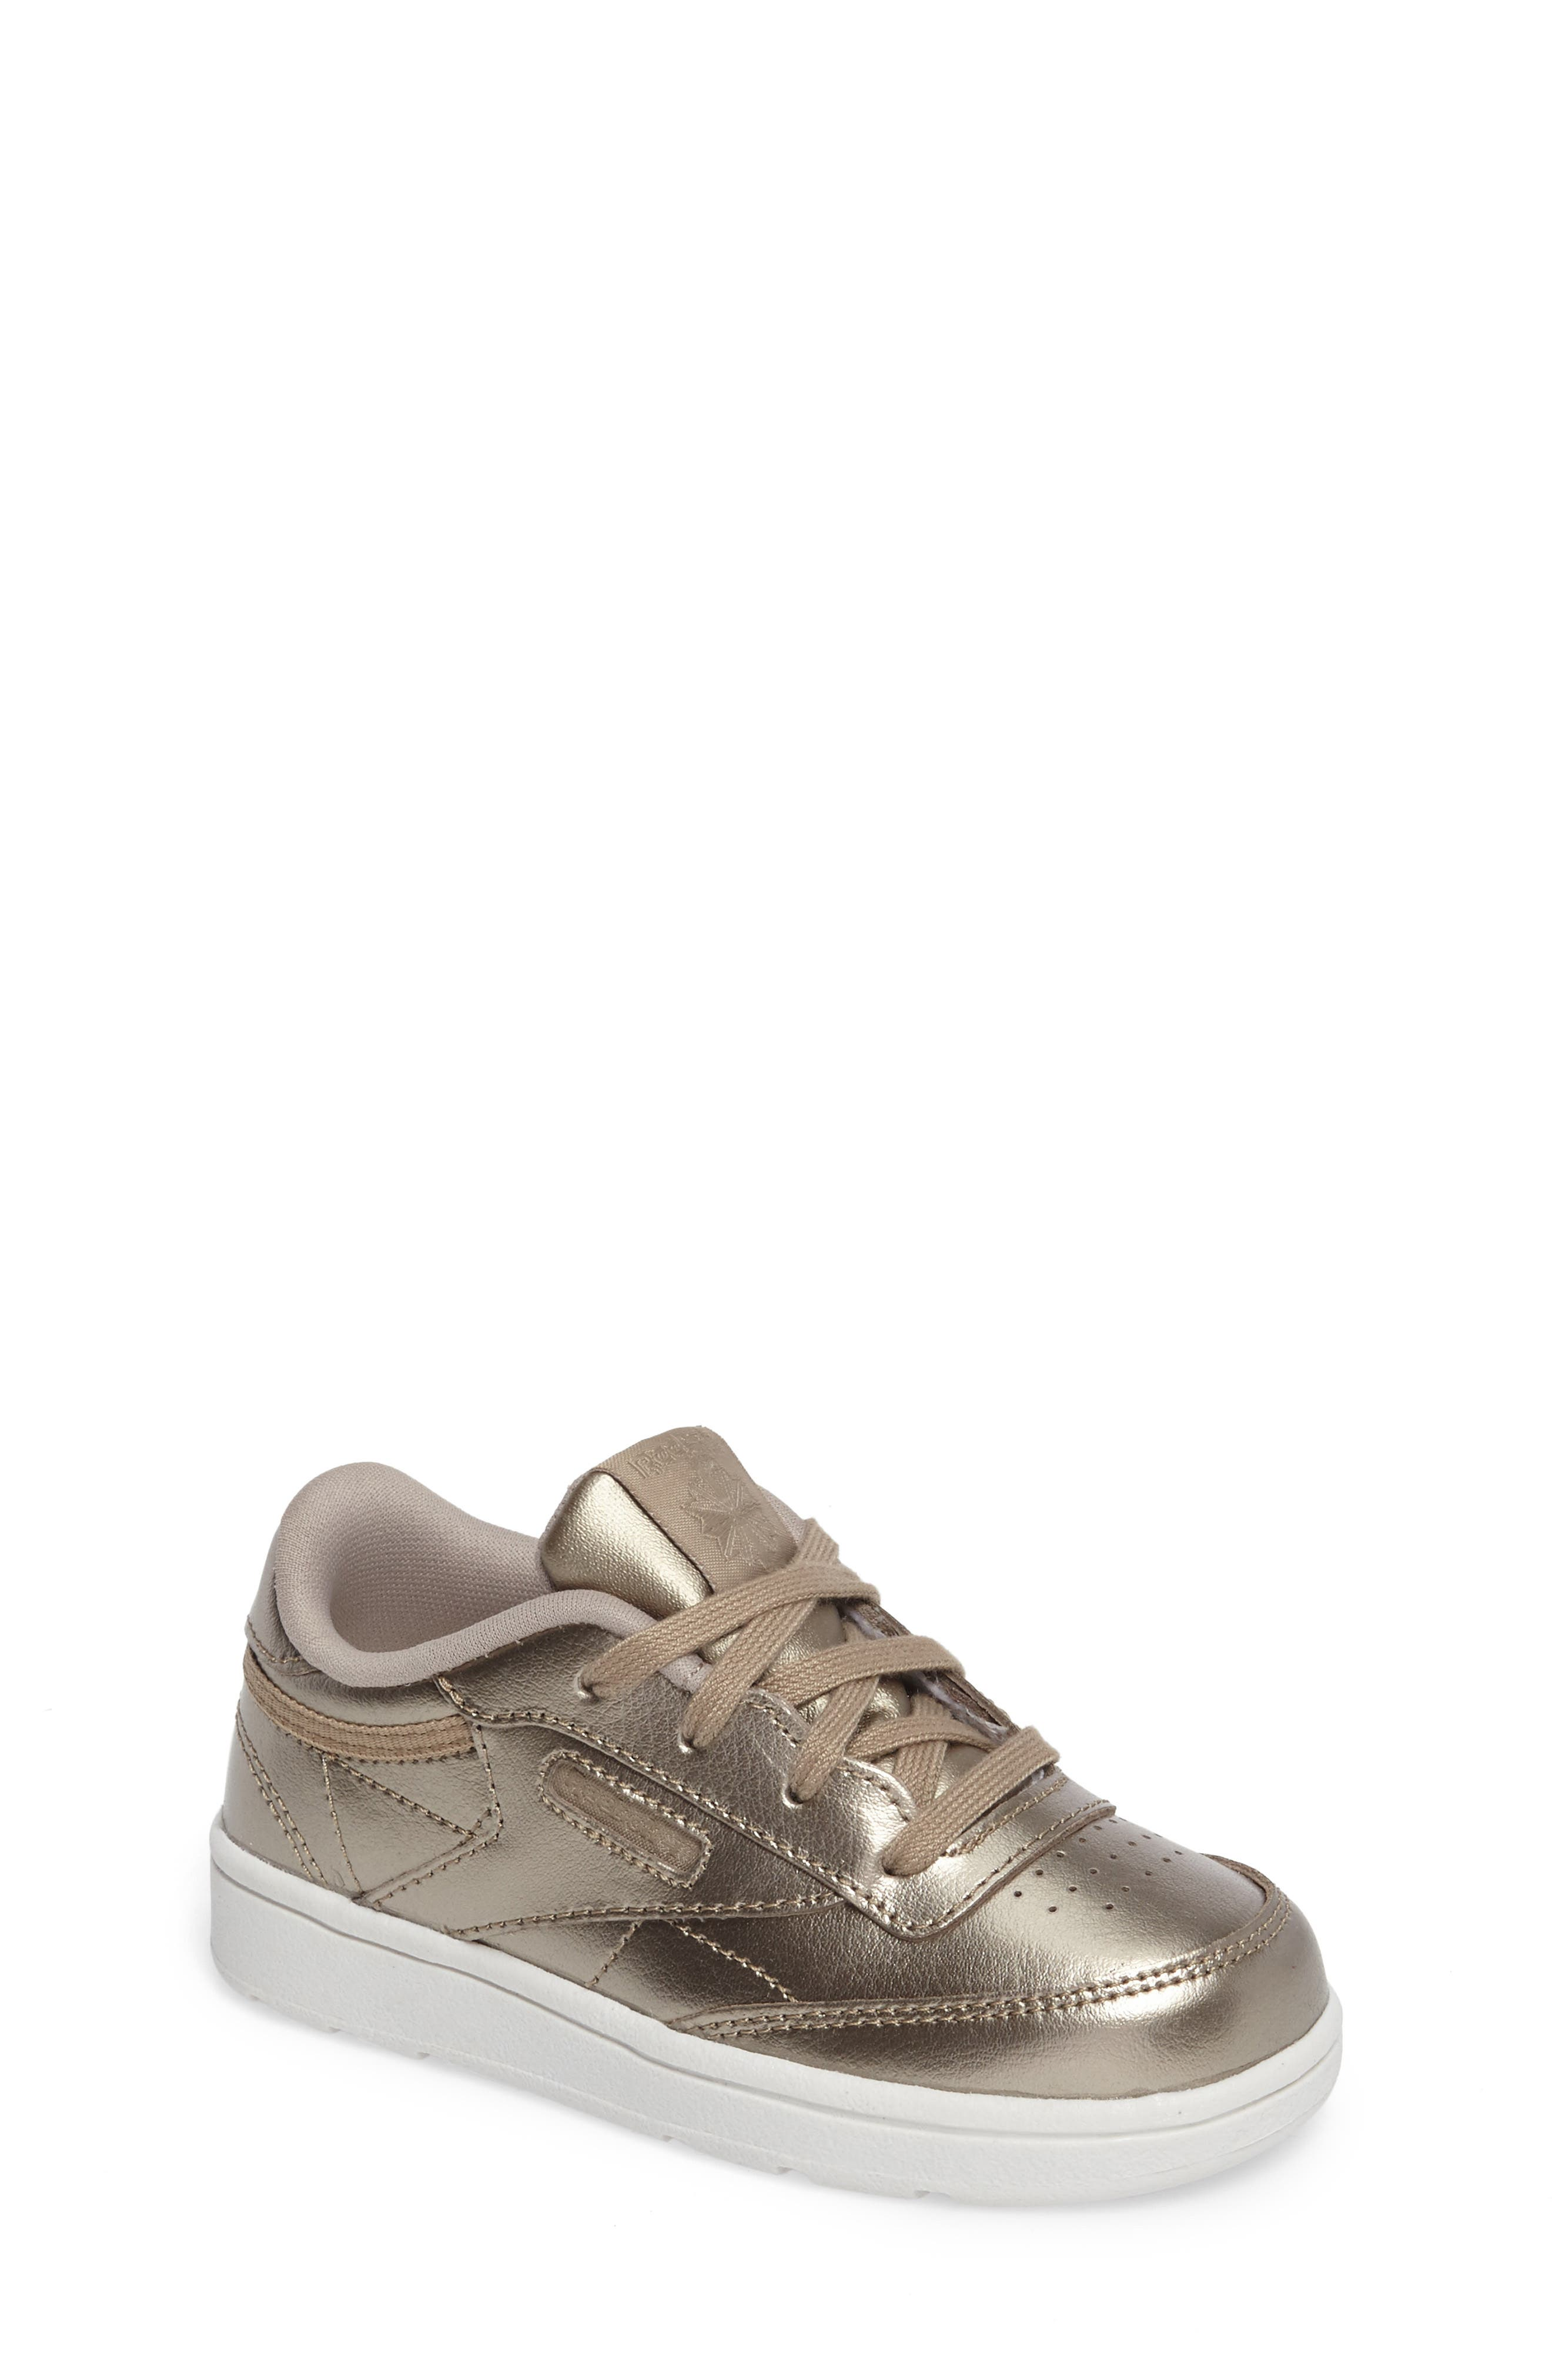 Main Image - Reebok Club C Melted Metallic Sneaker (Baby, Walker & Toddler)